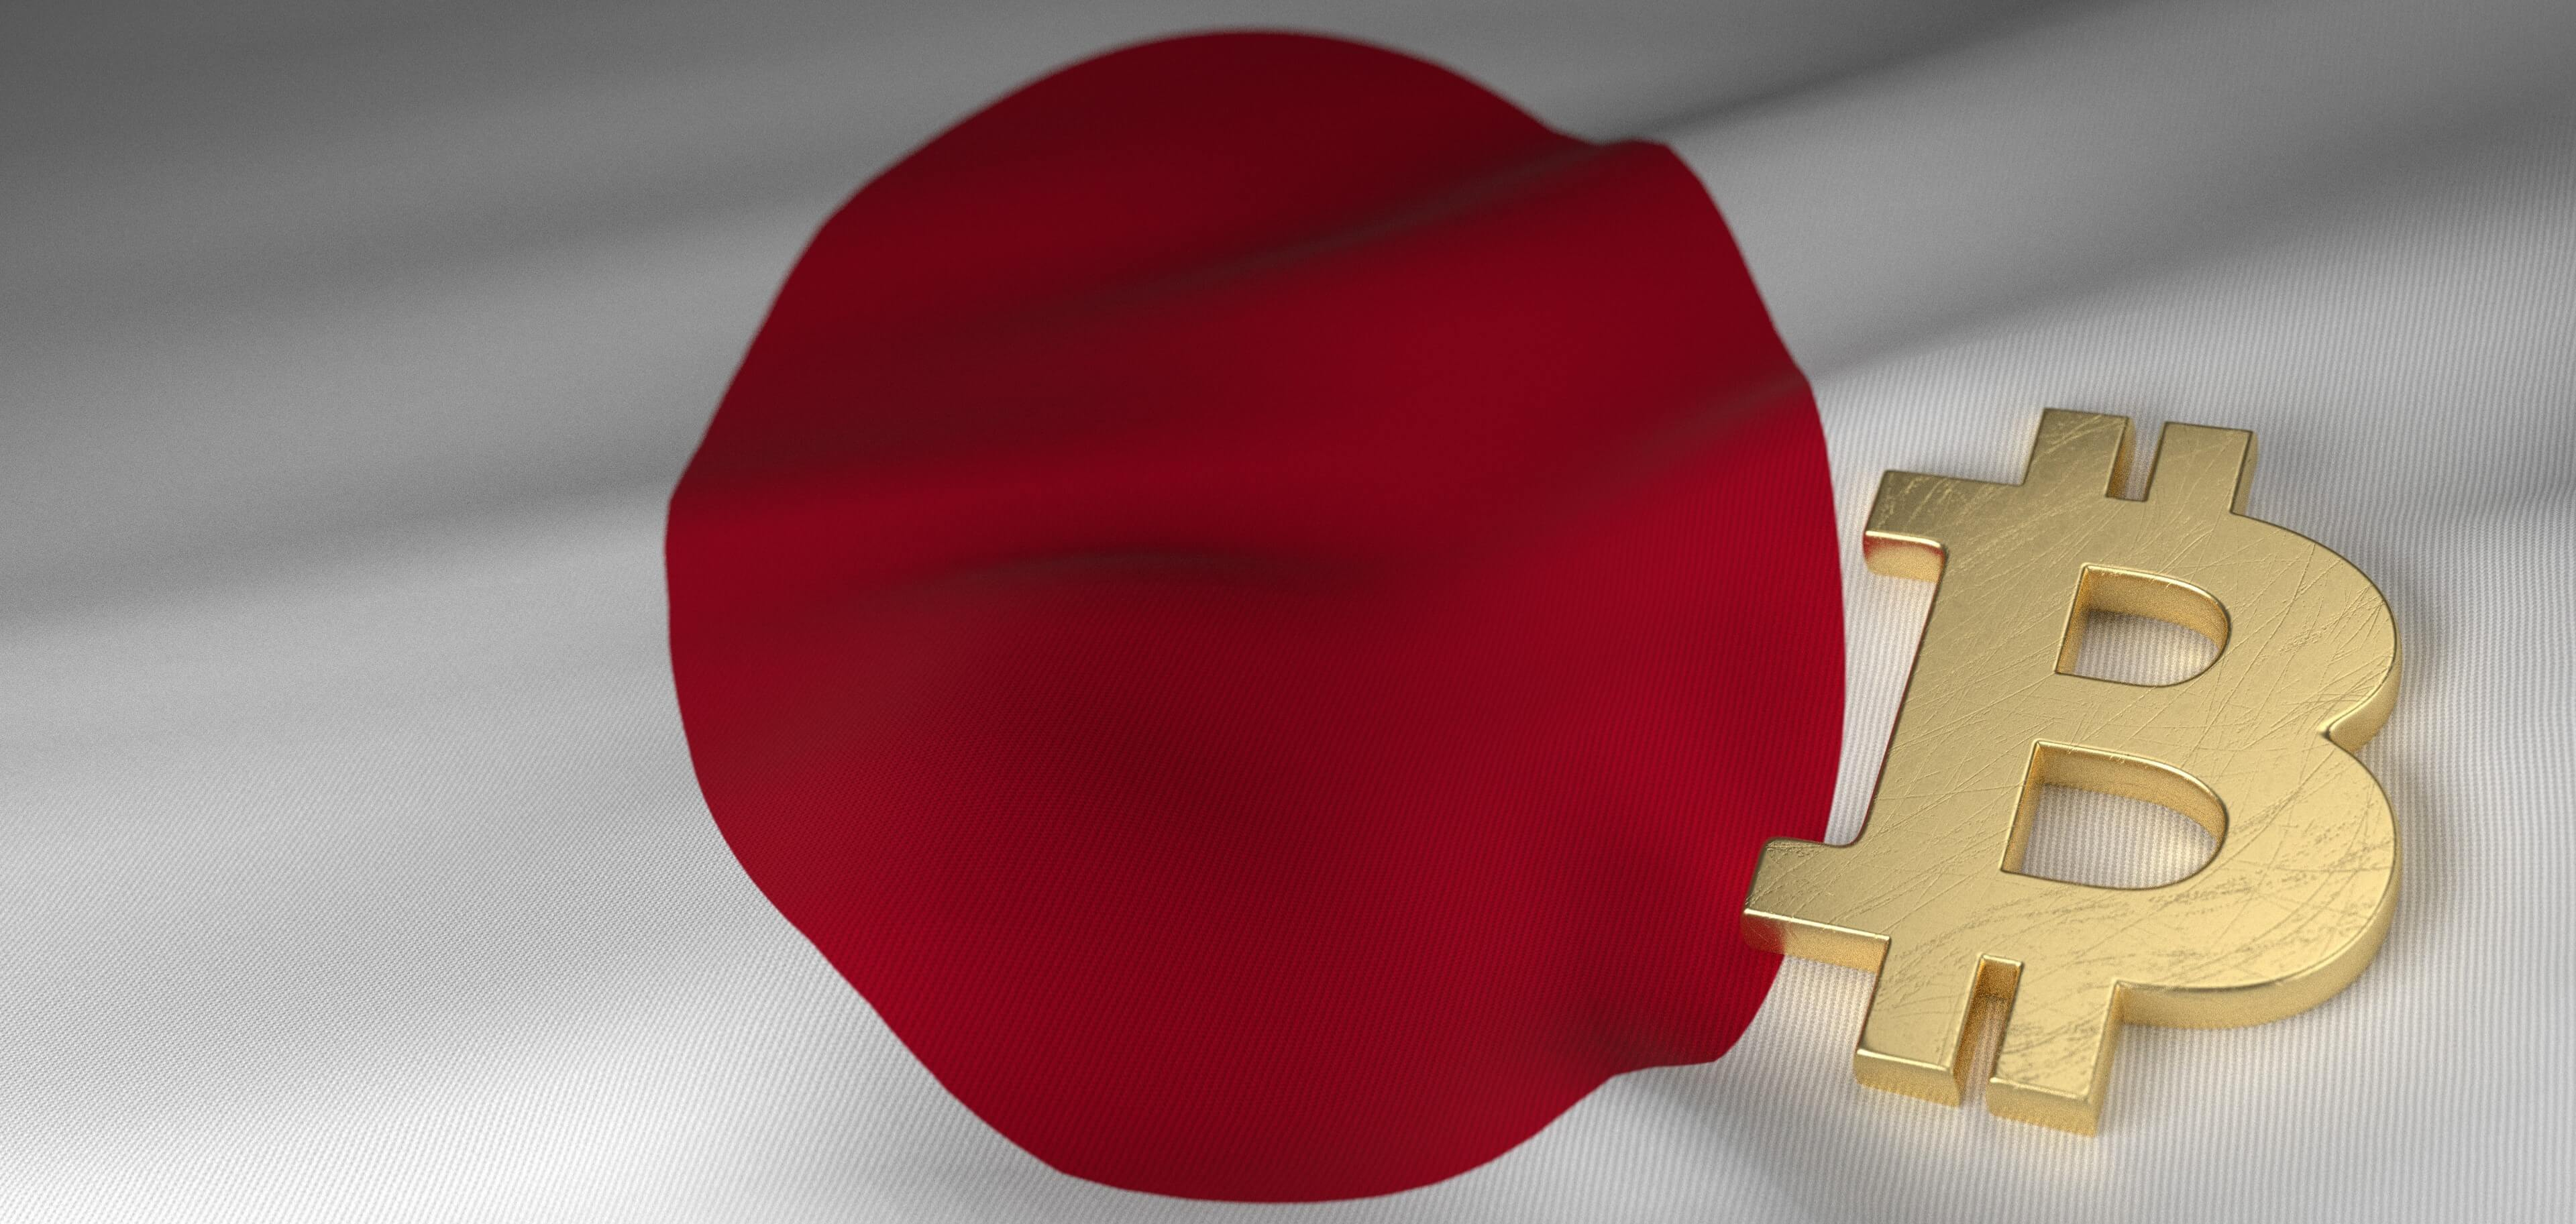 The Japanese Economy Could Evolve Thanks to Bitcoin